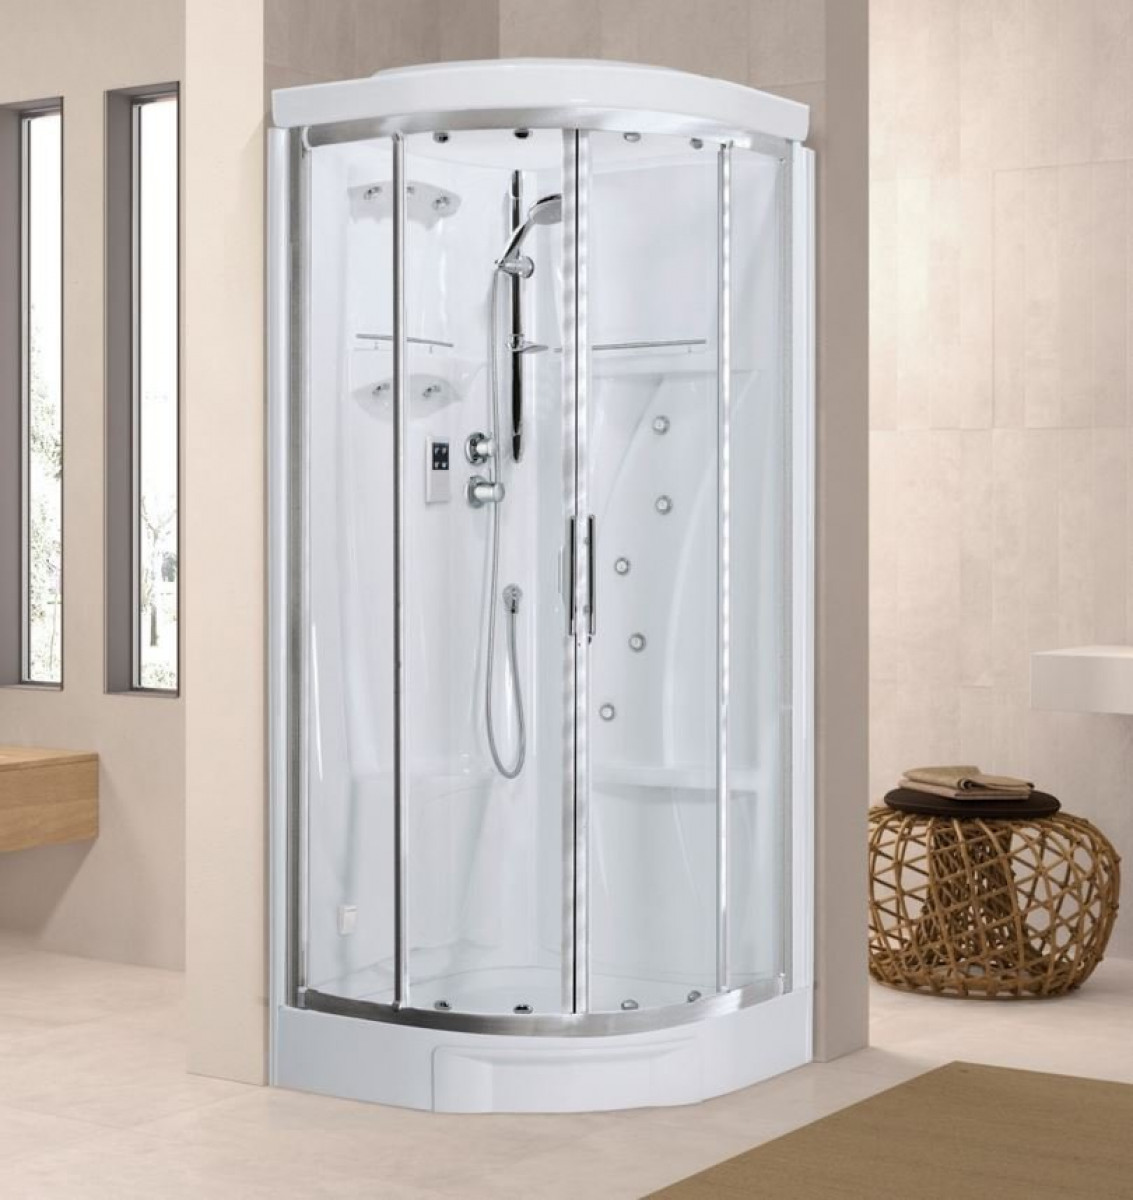 Novellini New Holiday R90 Quadrant Steam & Shower Enclosure